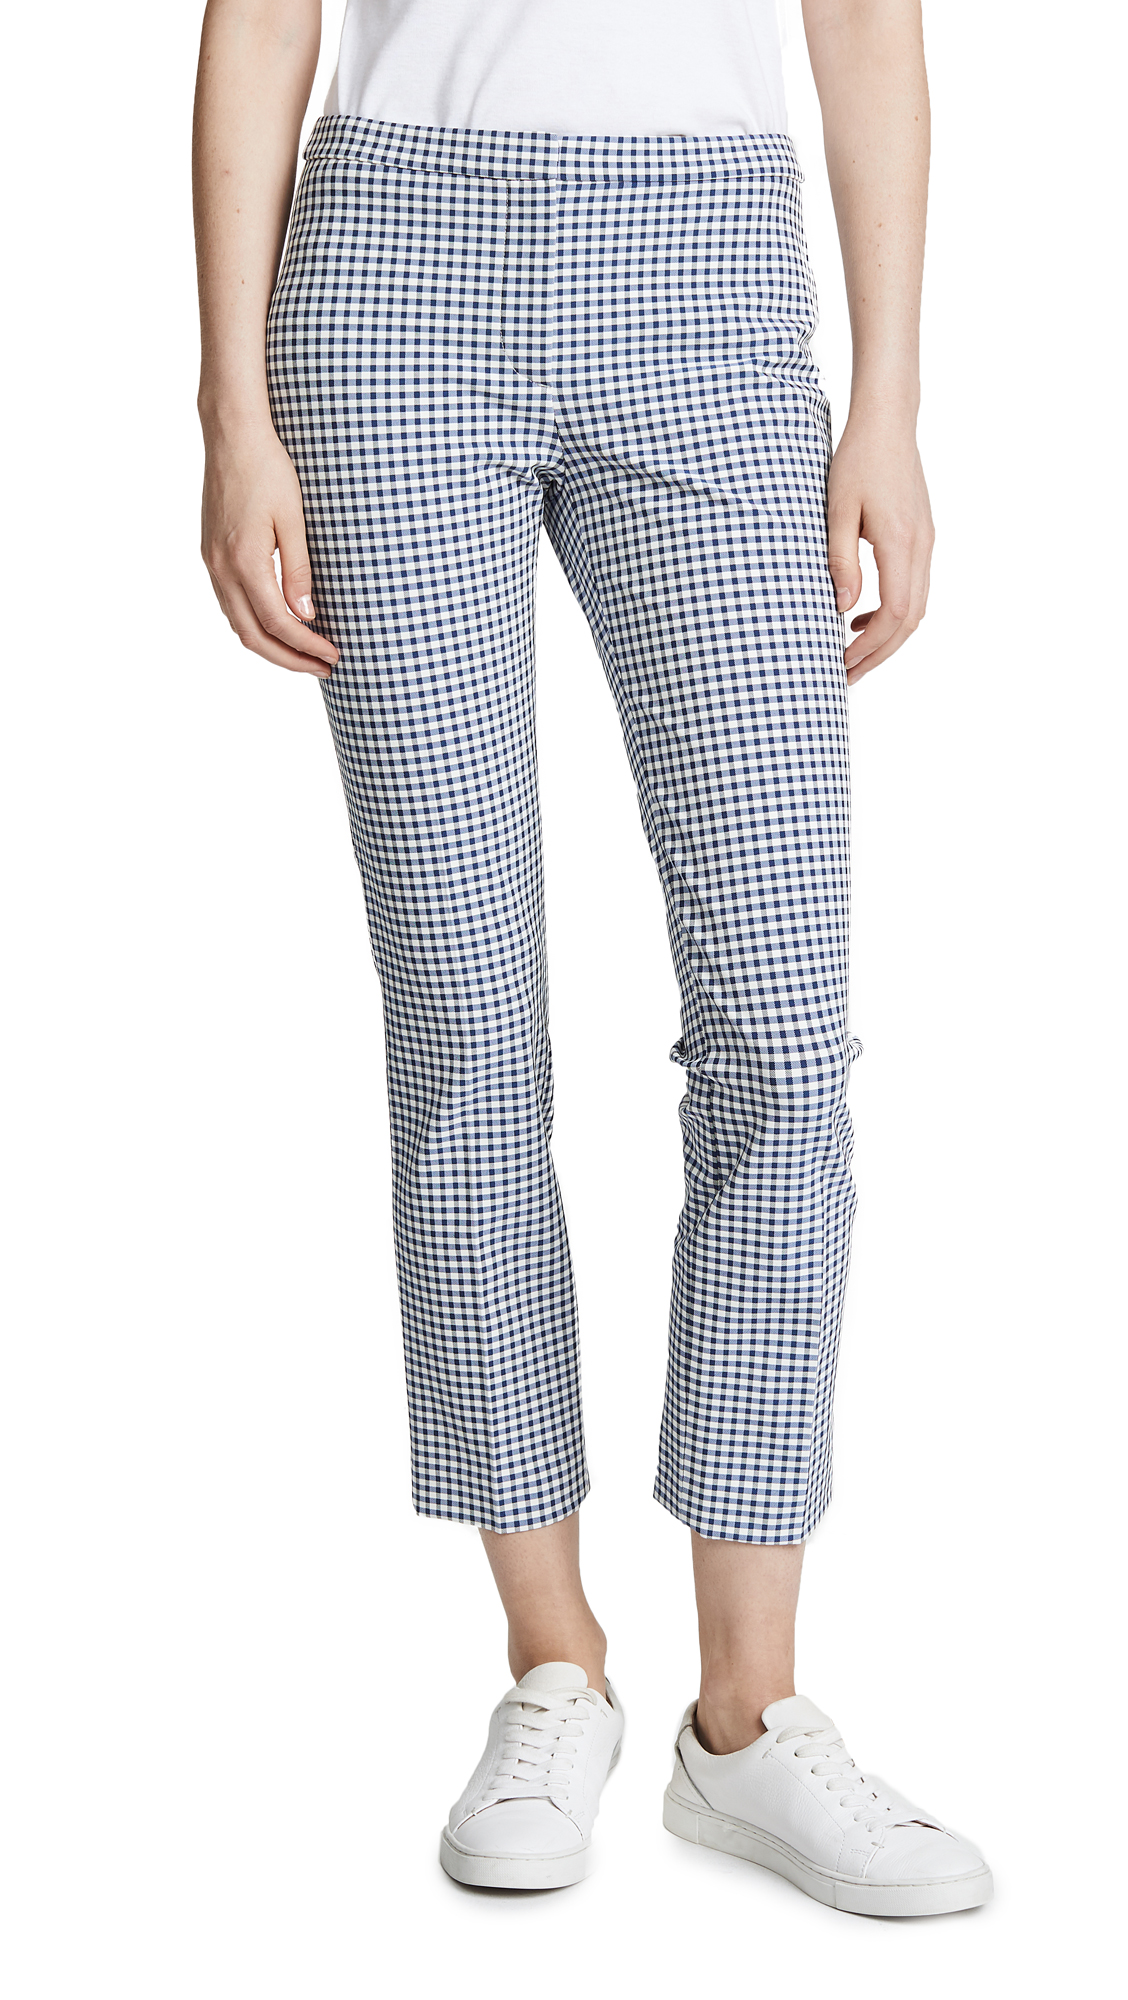 Theory Classic Skinny Pants In Multi Blue/White